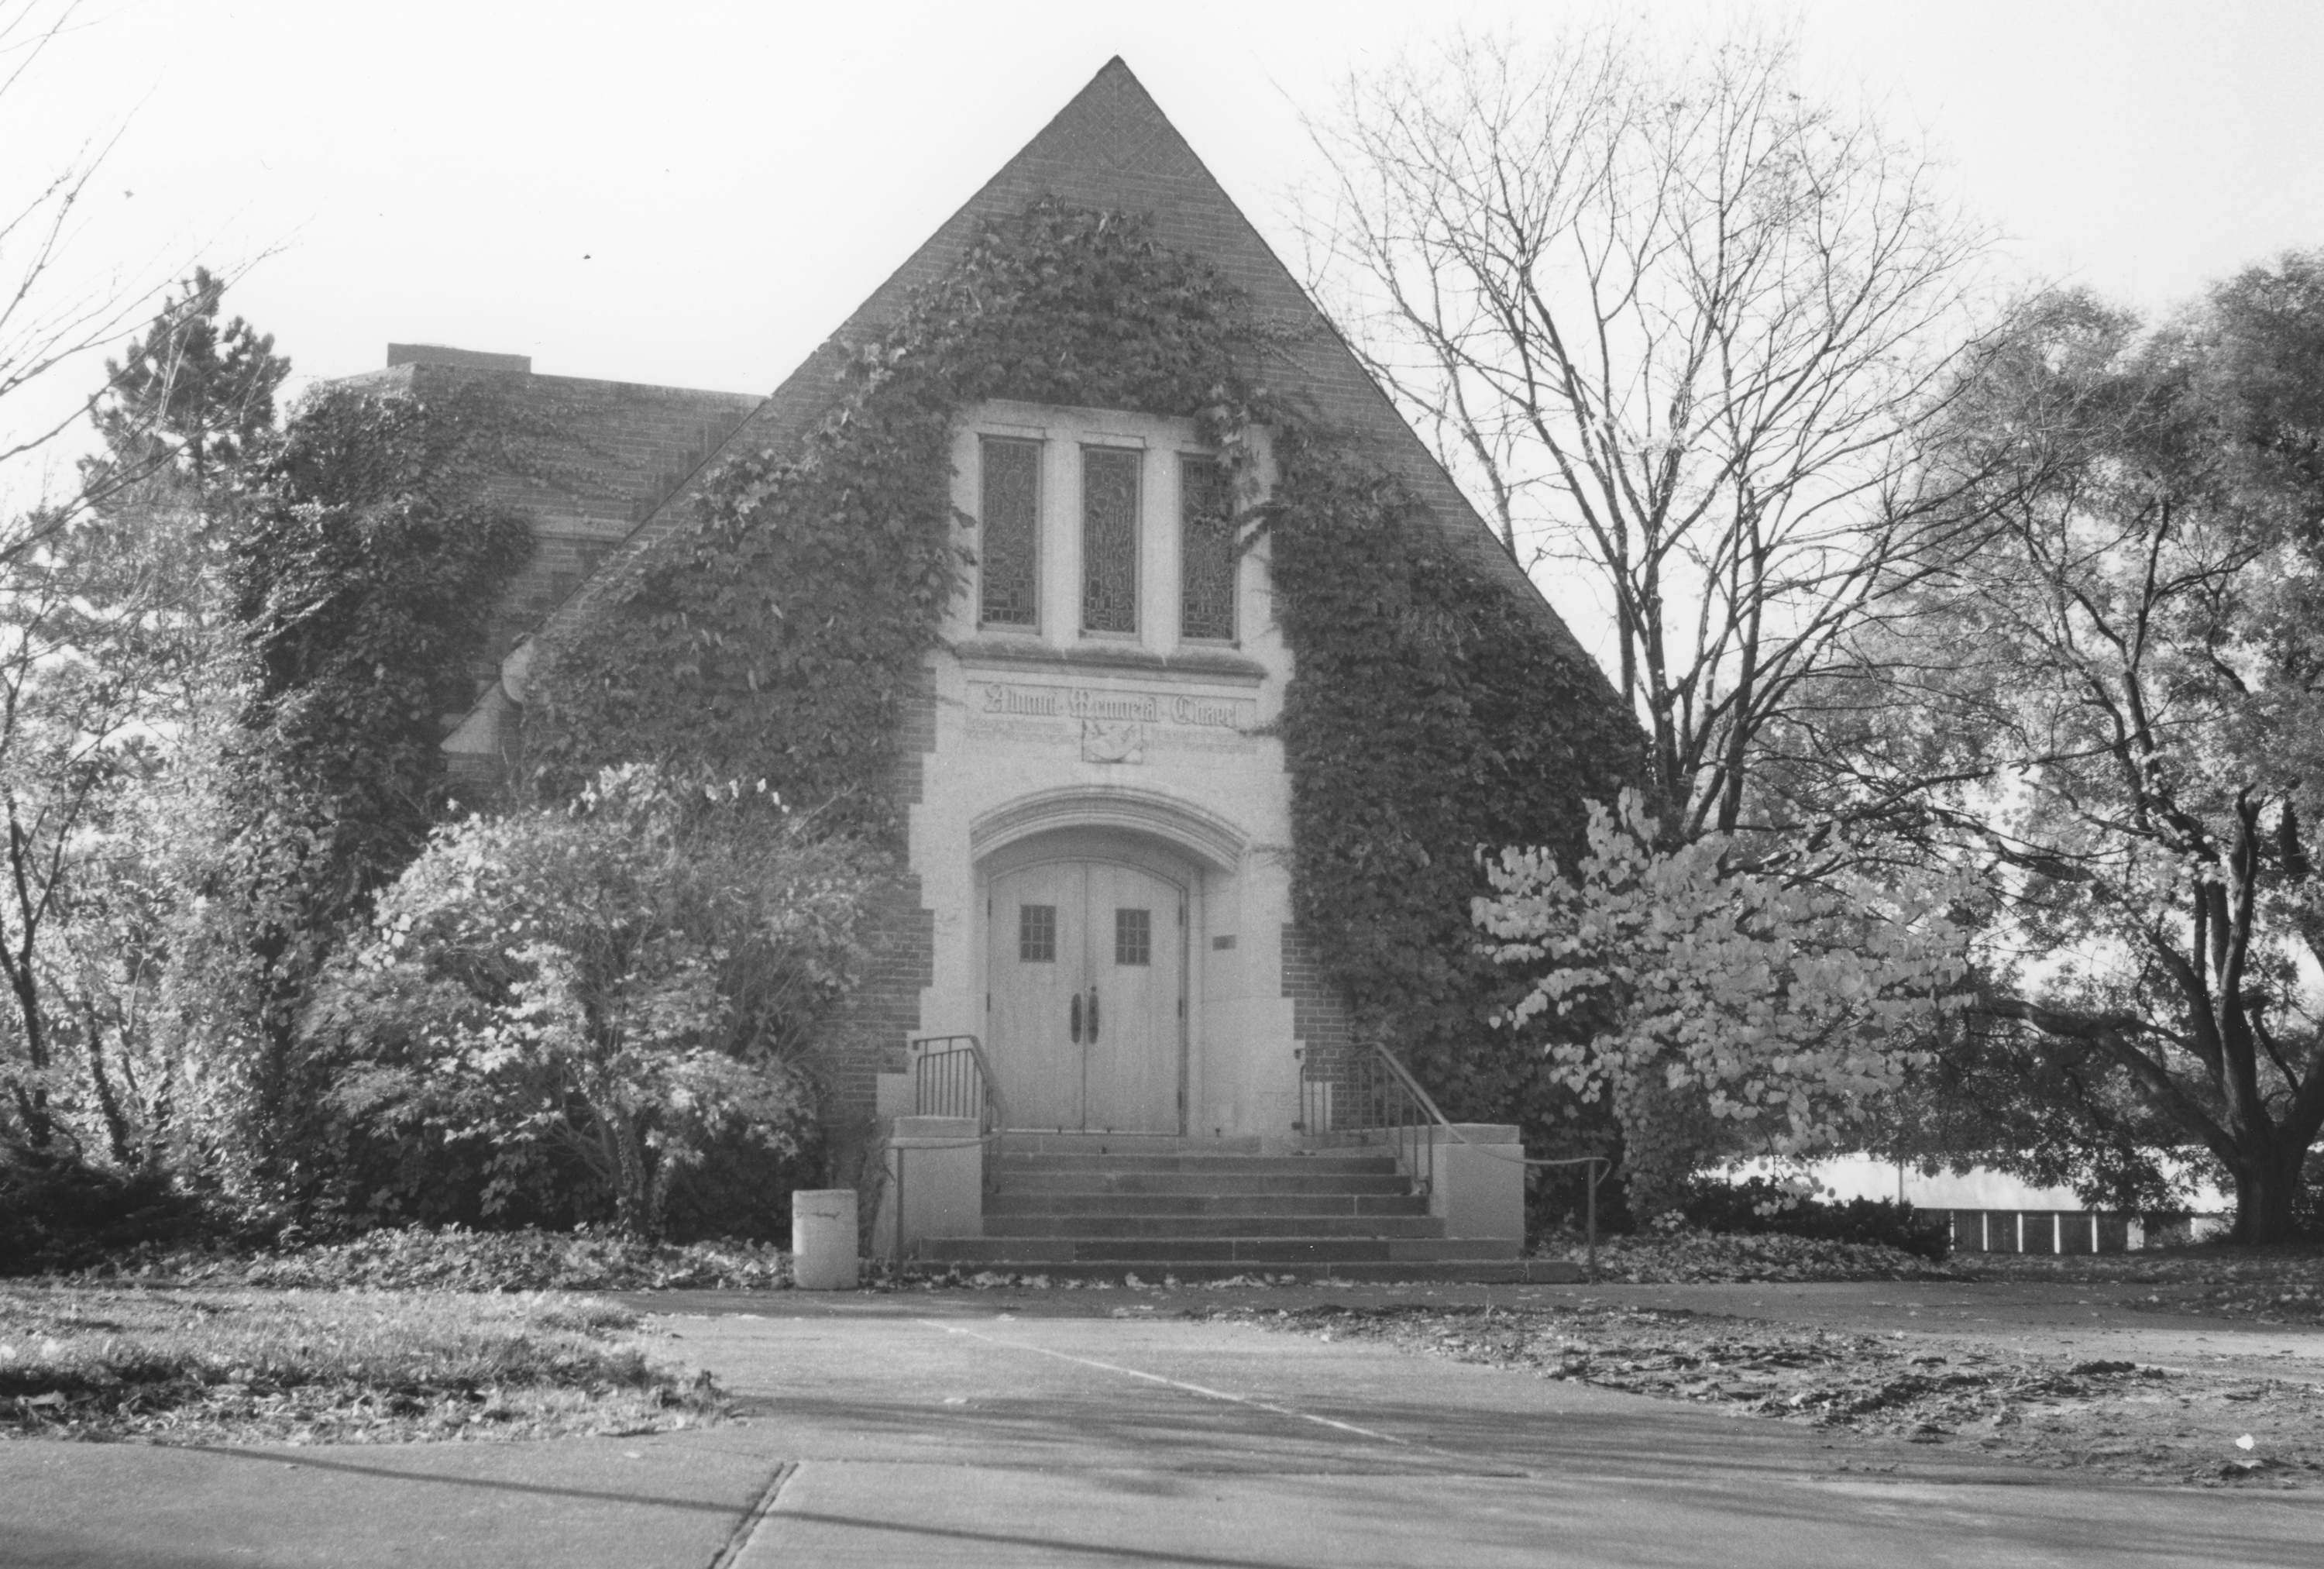 Outside of the Alumni Memorial Chapel, undated